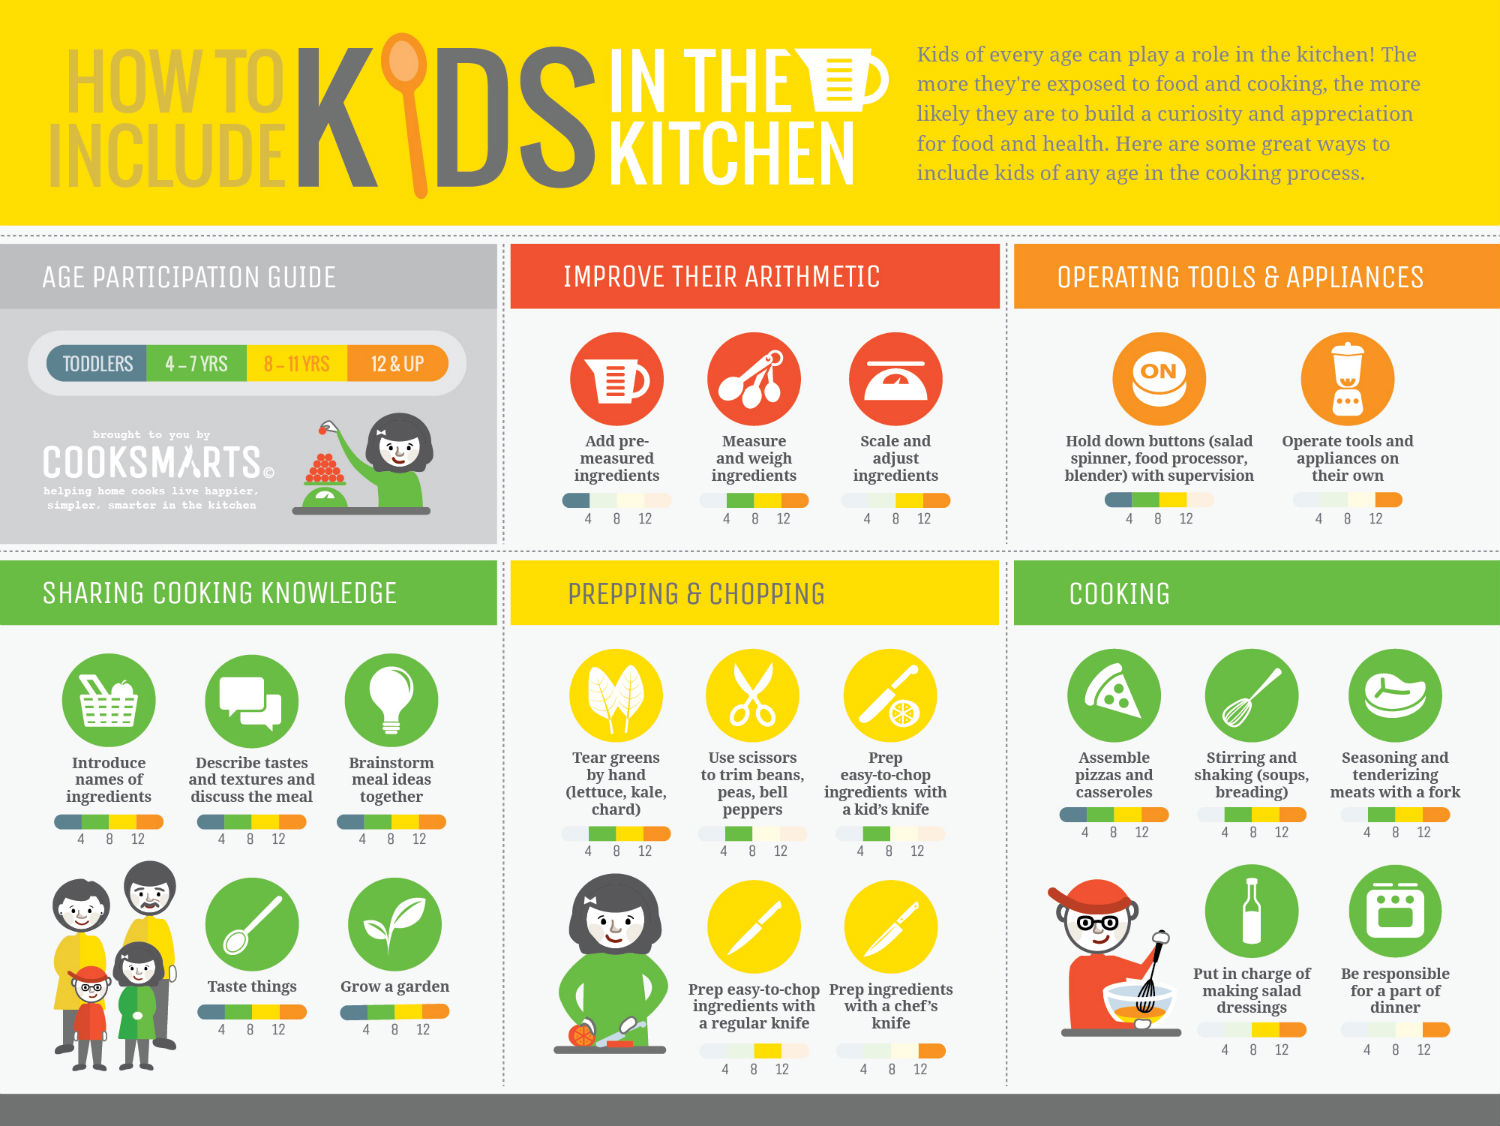 How to cook with kids in the kitchen - tips and tricks